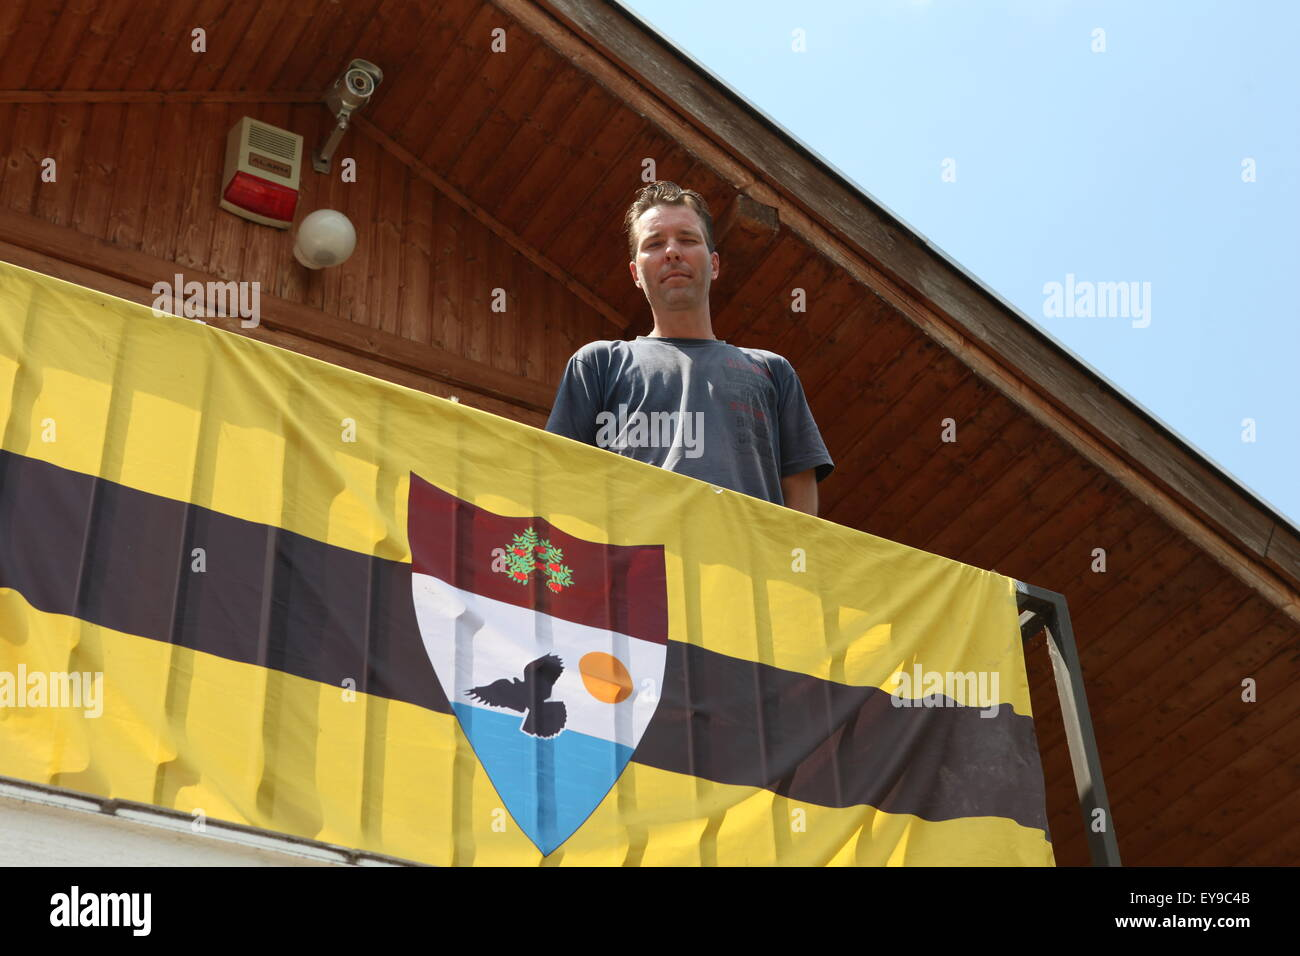 Kenneth Lillieholm, Grounds Operation Manager of LSA (Liberland Settlement Association) on the balcony of one of - Stock Image